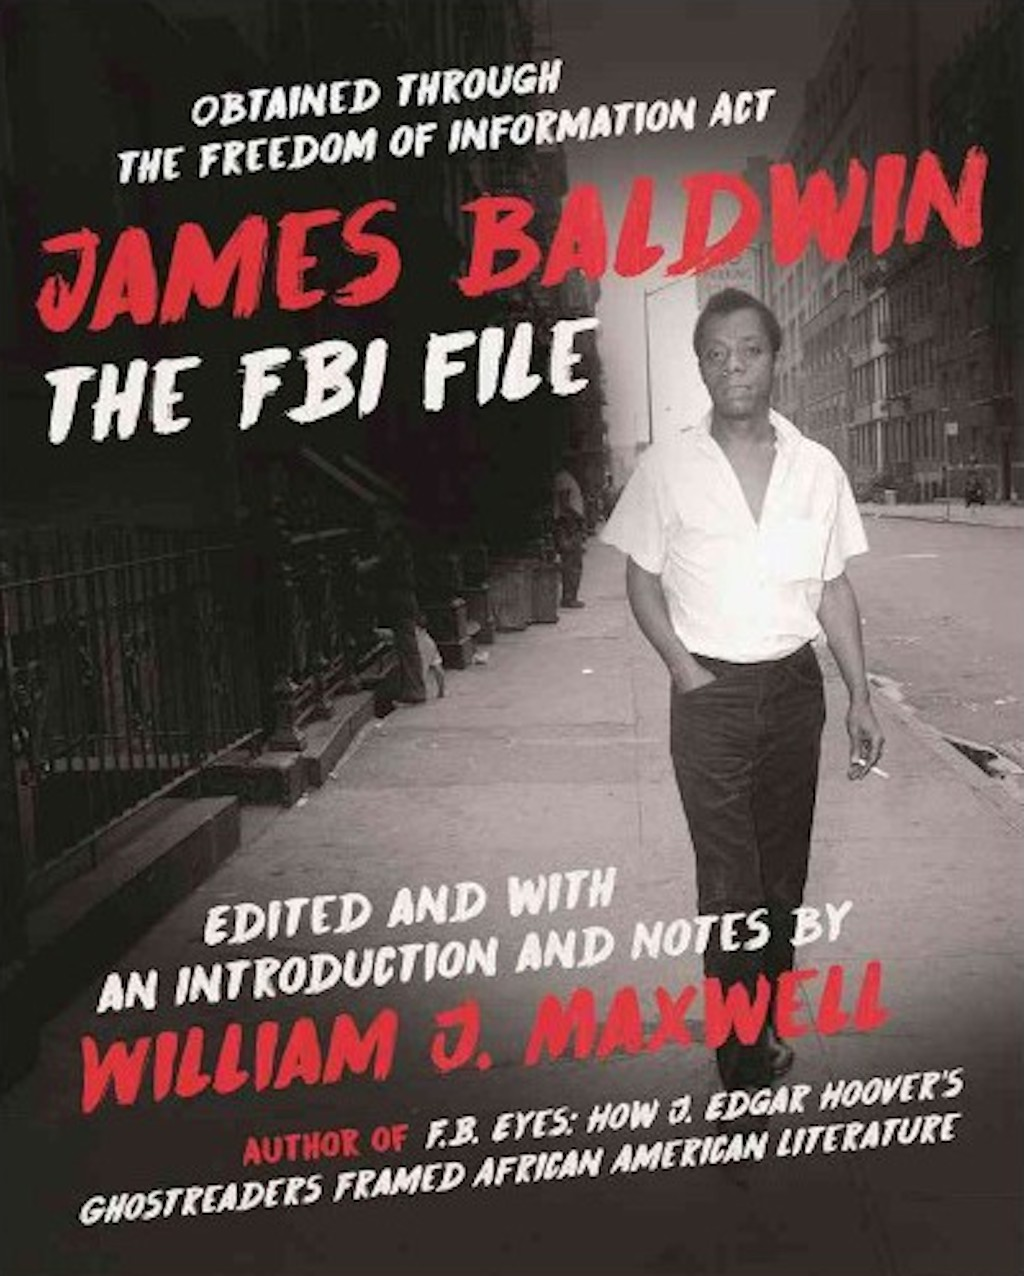 African American History, Black History, James Baldwin, African American Literature, FBI Files, KOLUMN Magazine, KOLUMN